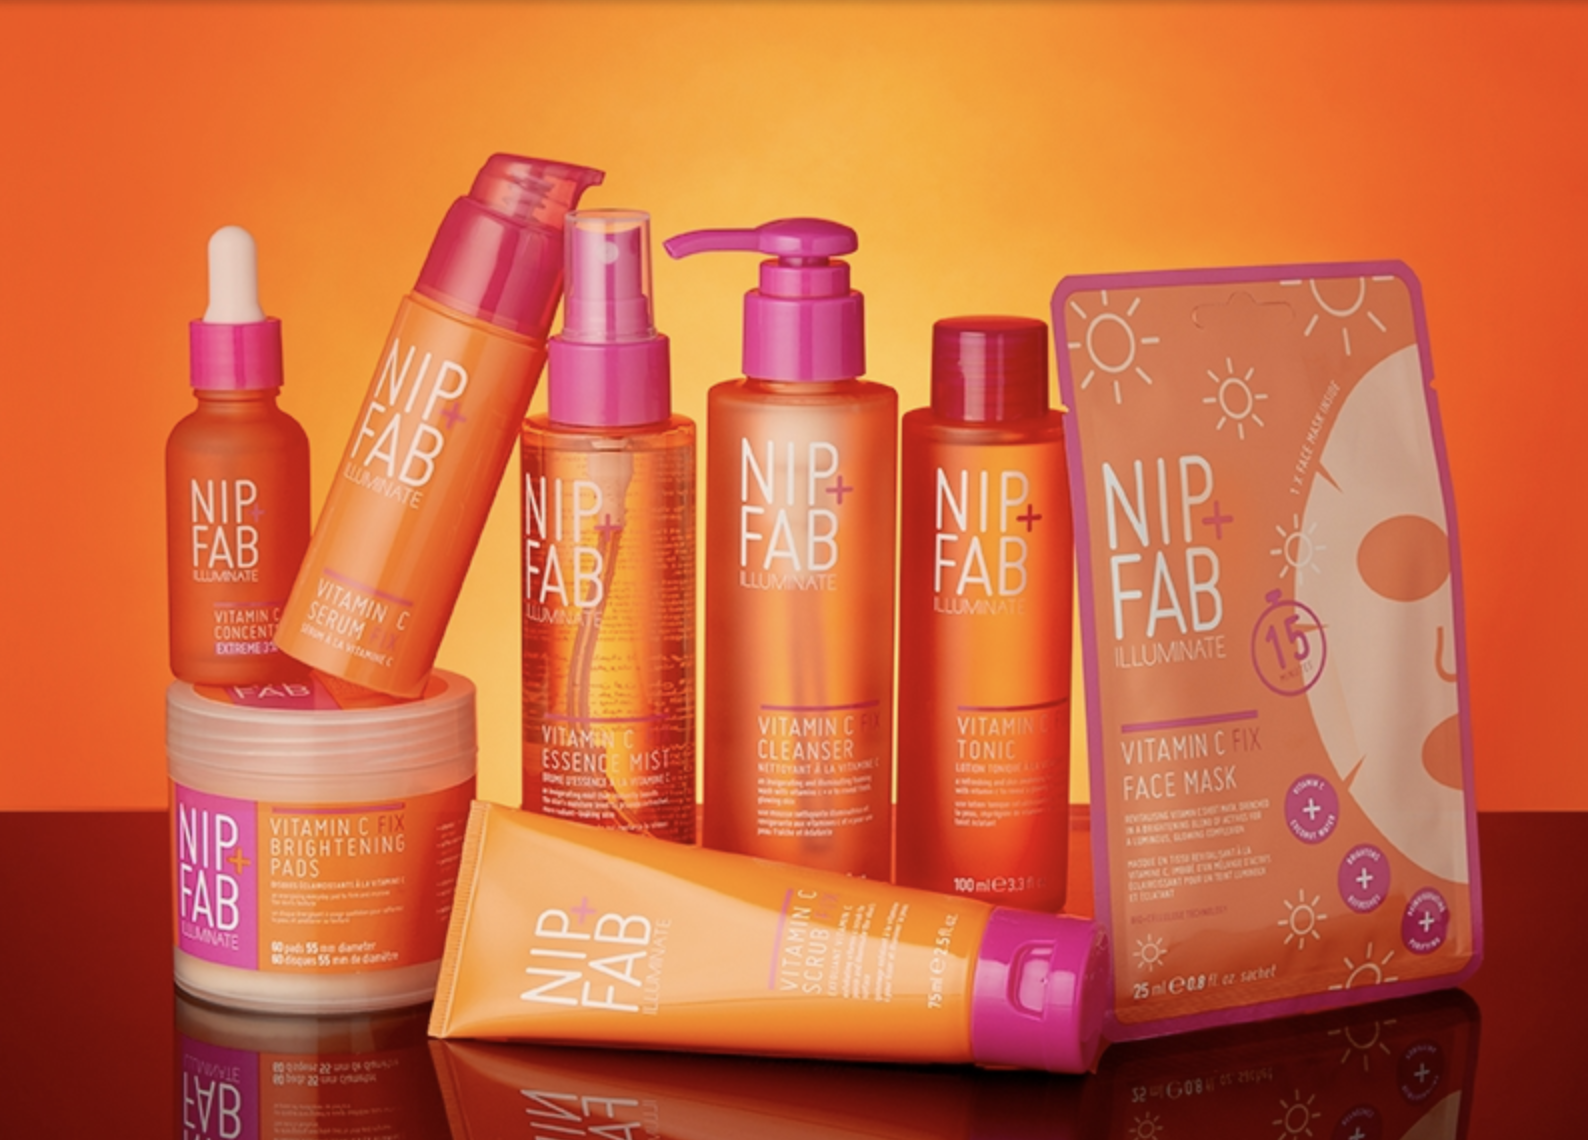 A close-up photo showcasing Nip + Fab's new Vitamin C collection of skincare products.